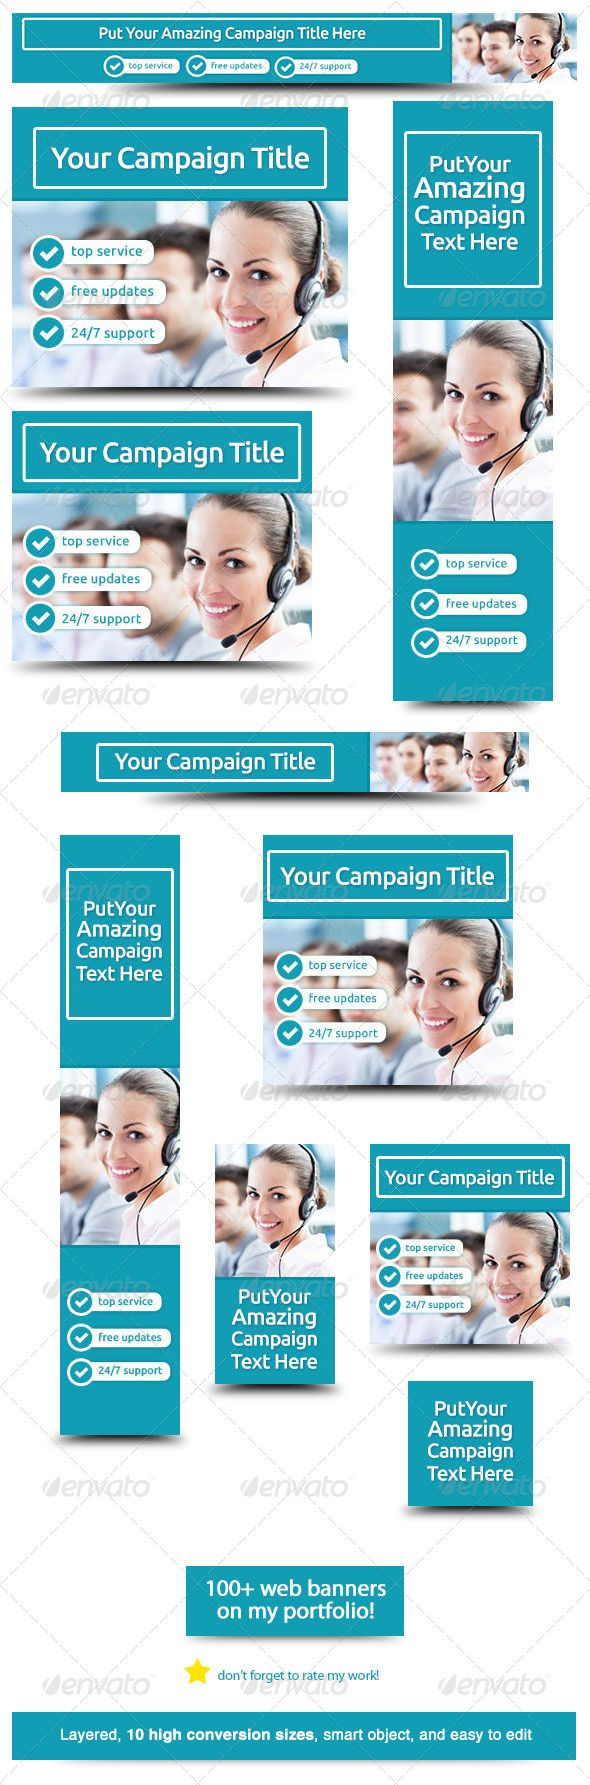 Corporate Web Banner Design Template 30 | Web banner design and ...